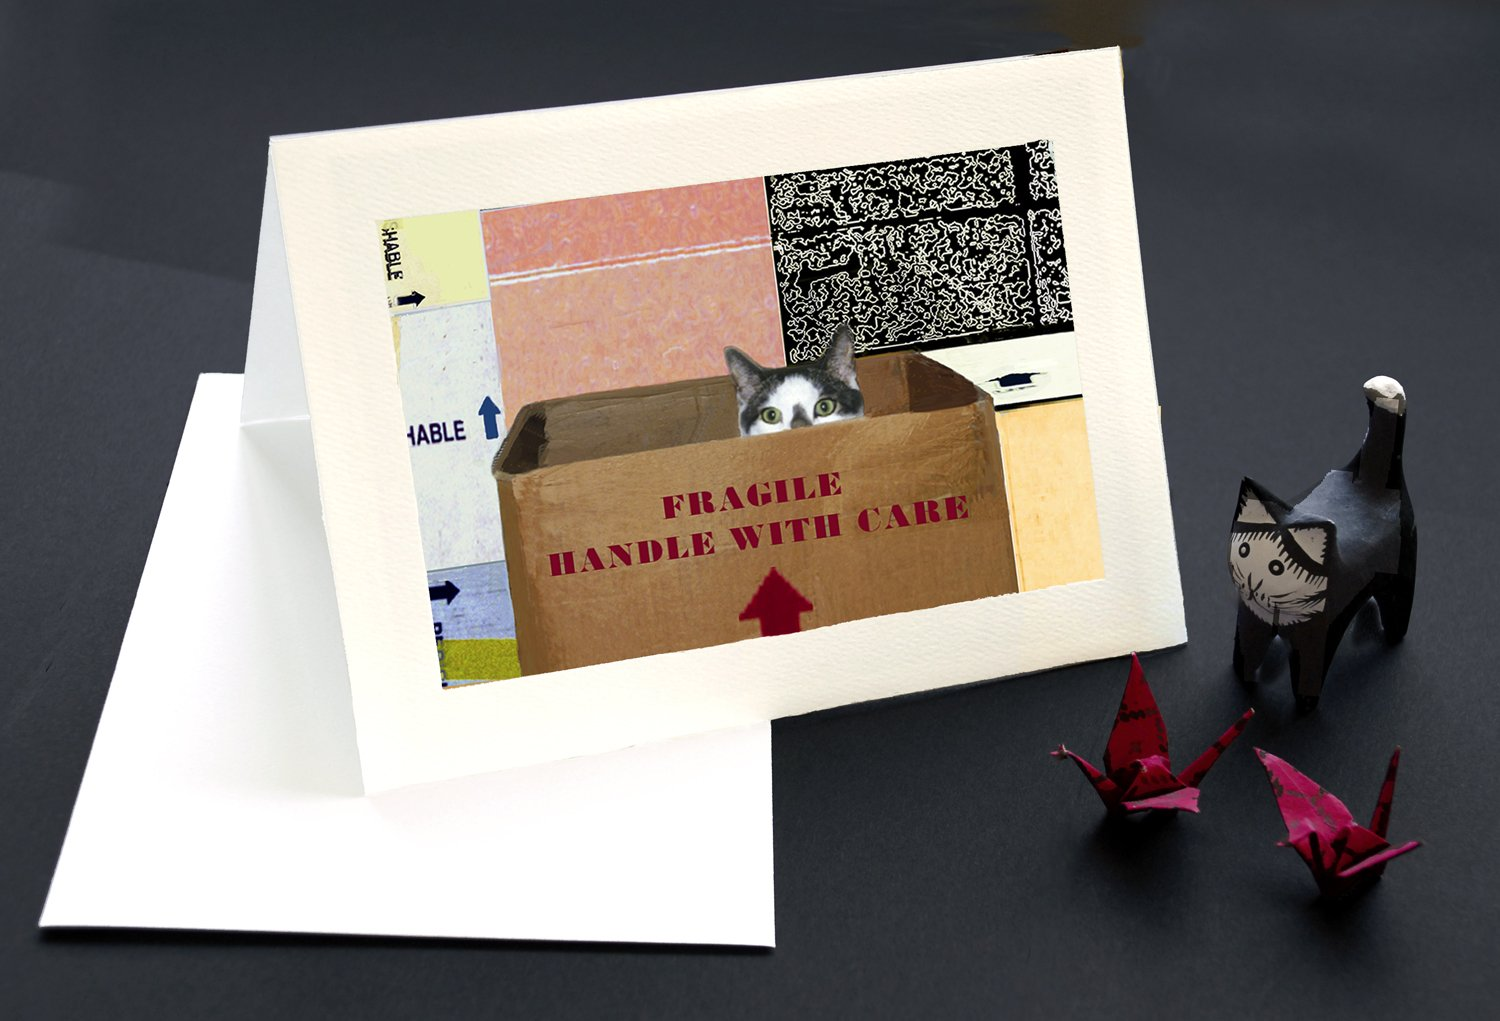 Handle with Care Cat Greeting Cards, Save on 10-pack, Friendship Quotes, Deluxe Blank 5 X 7 Inch Handmade Notecards, Gifts for Cat Lovers and Crazy Cat Ladies By Deborah Julian